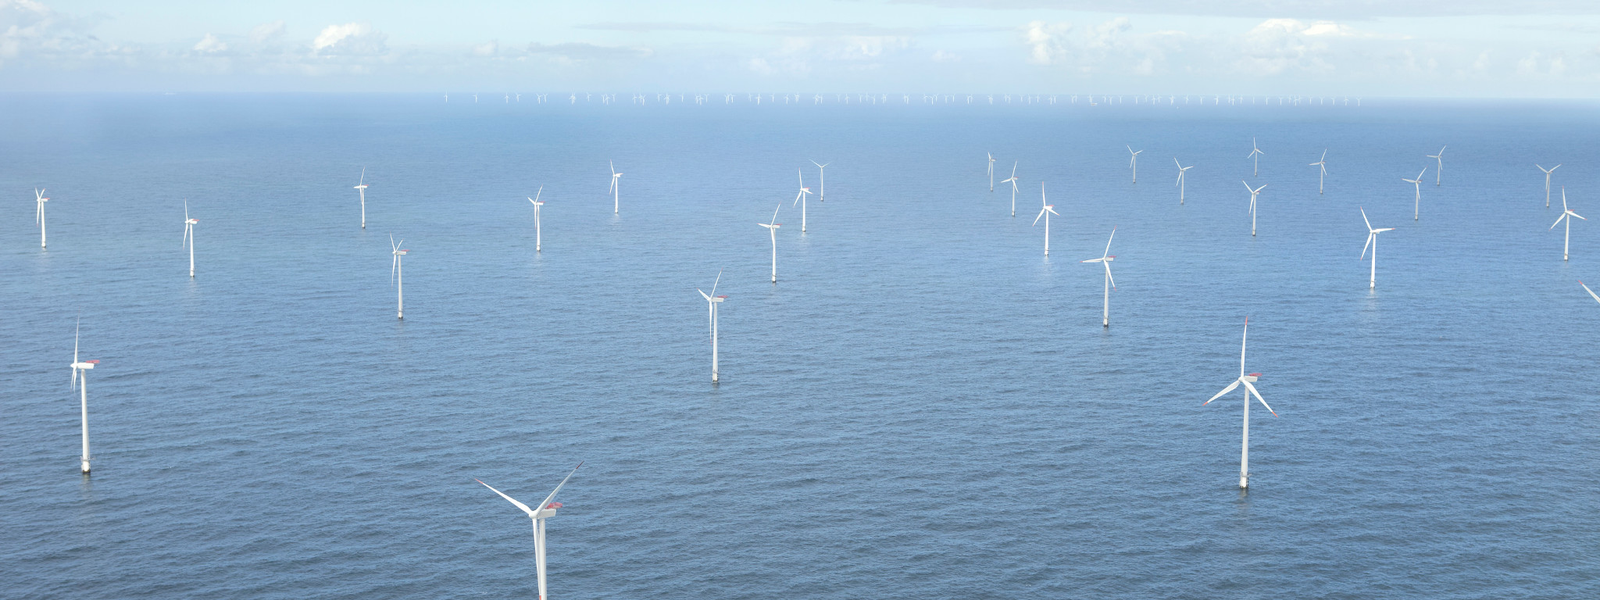 Dolwin 1 offshore windfarm